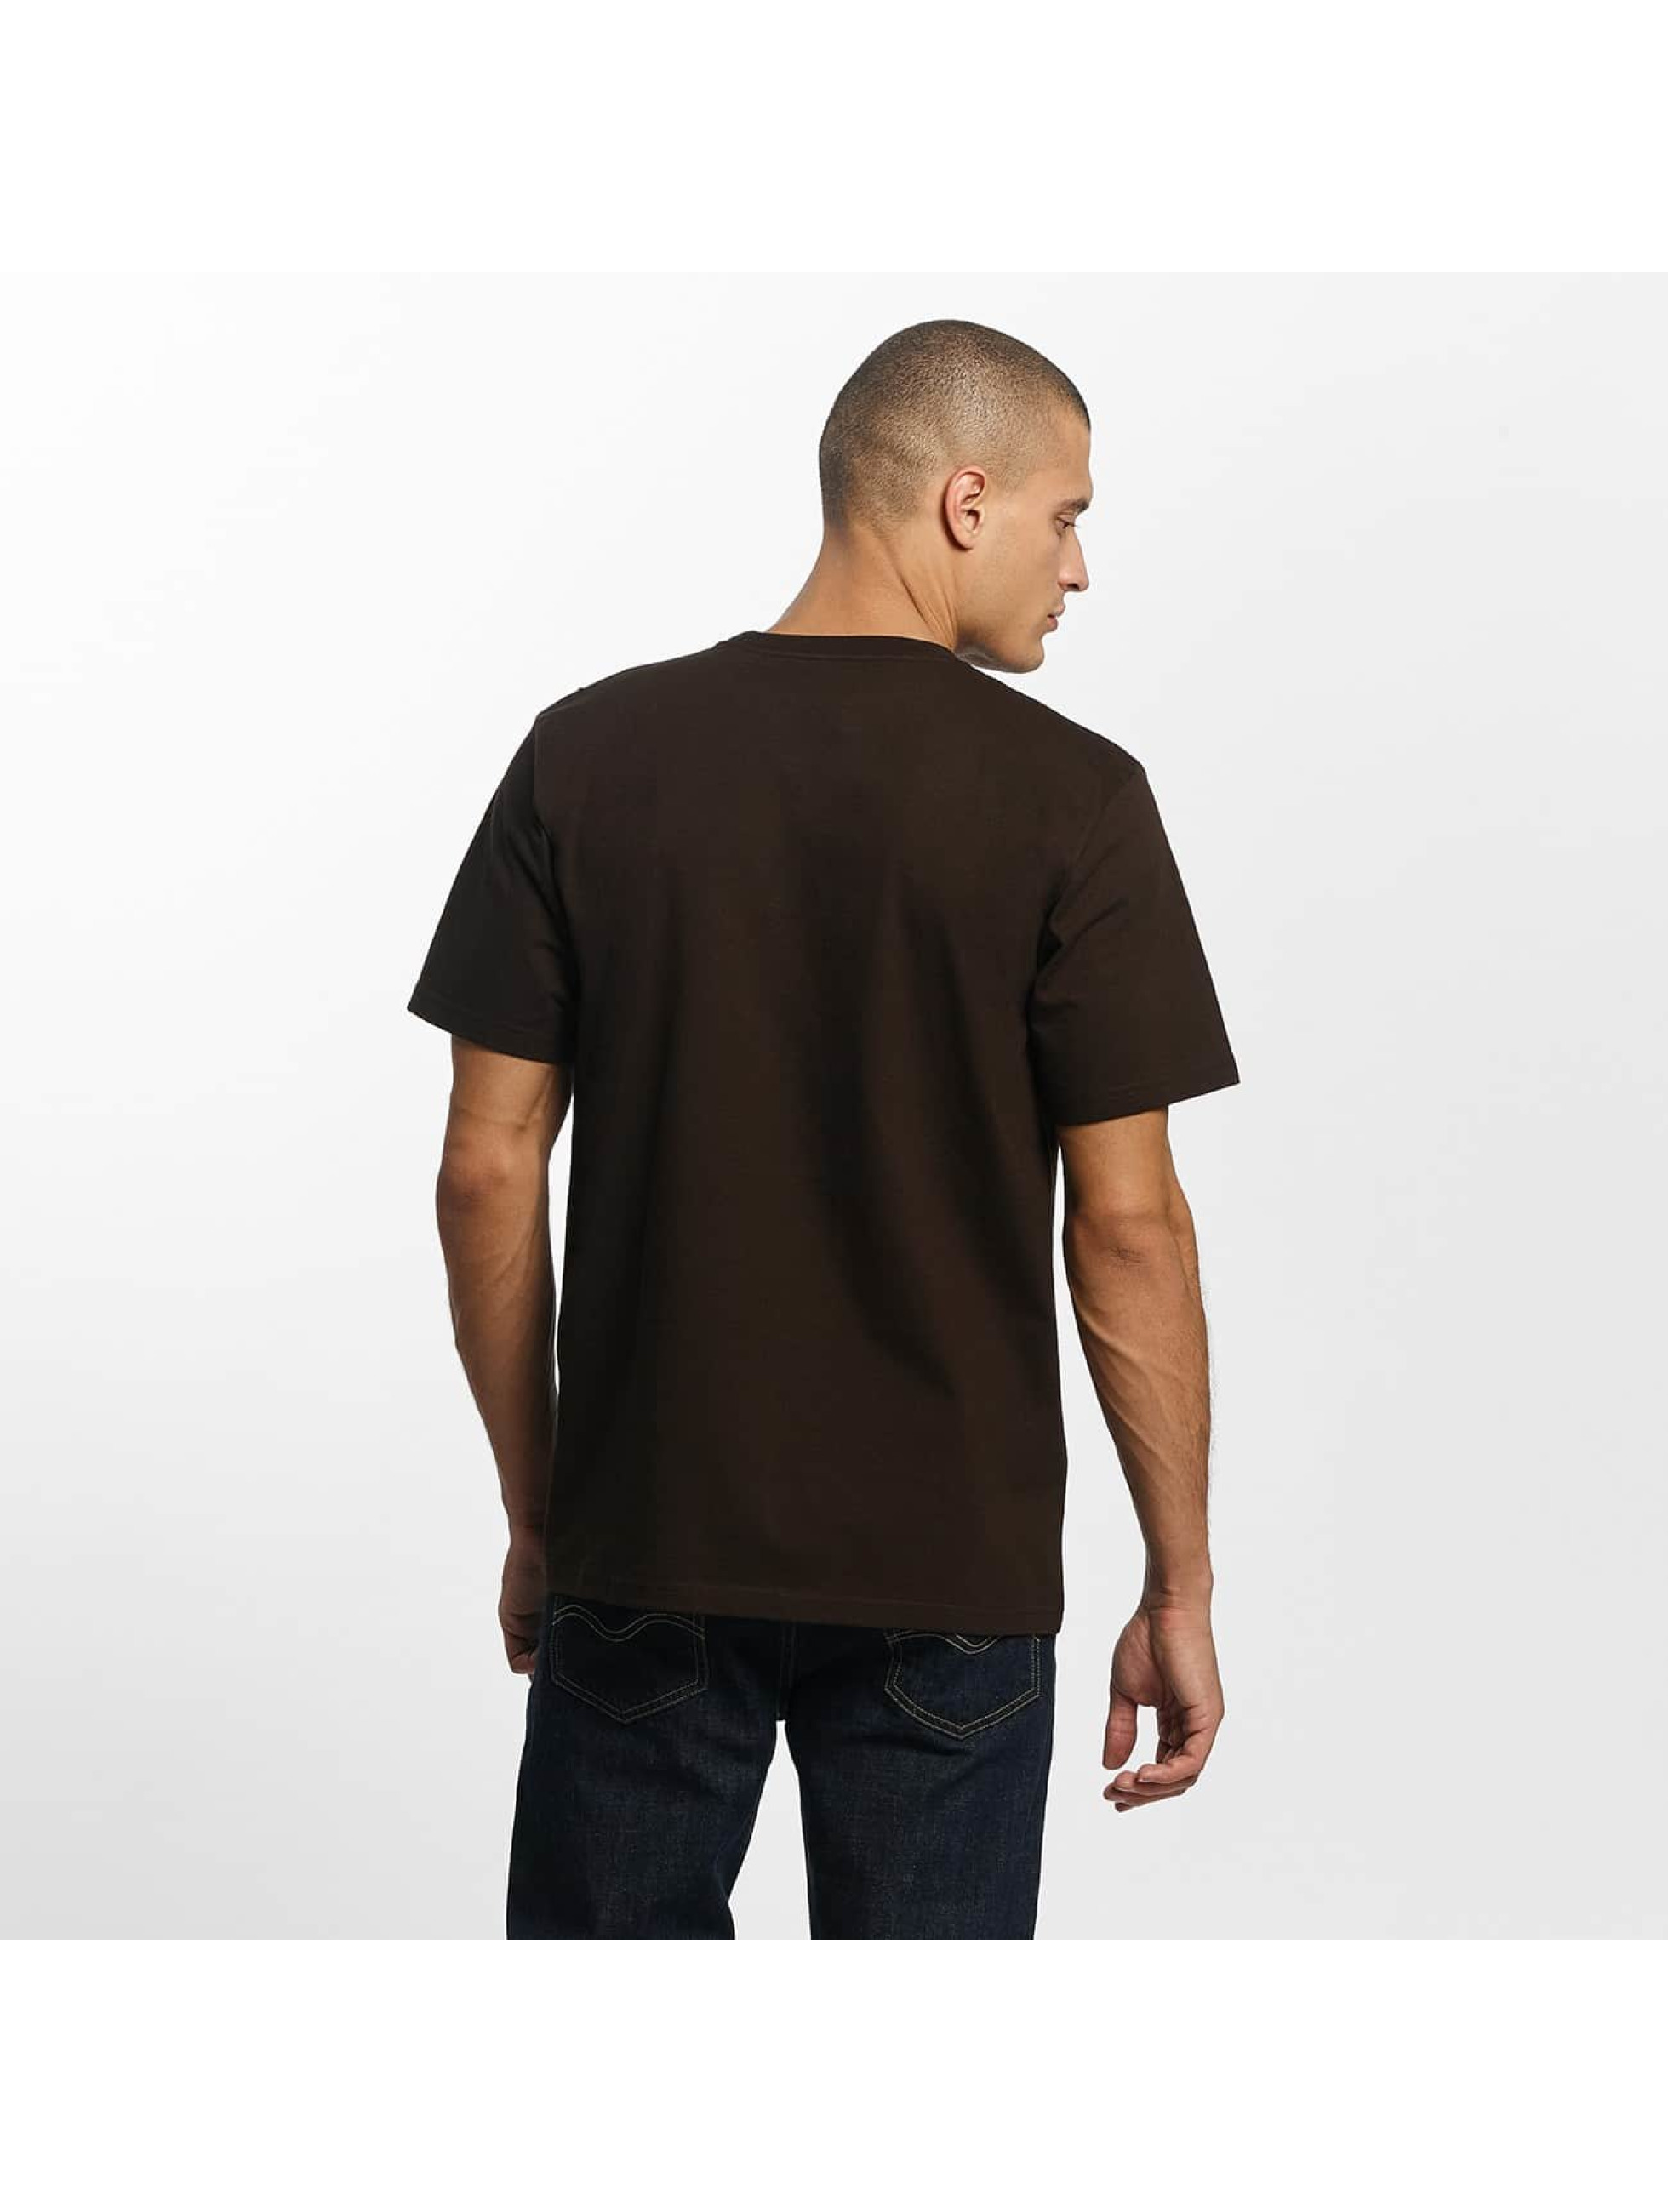 Carhartt WIP T-Shirt Chase brown